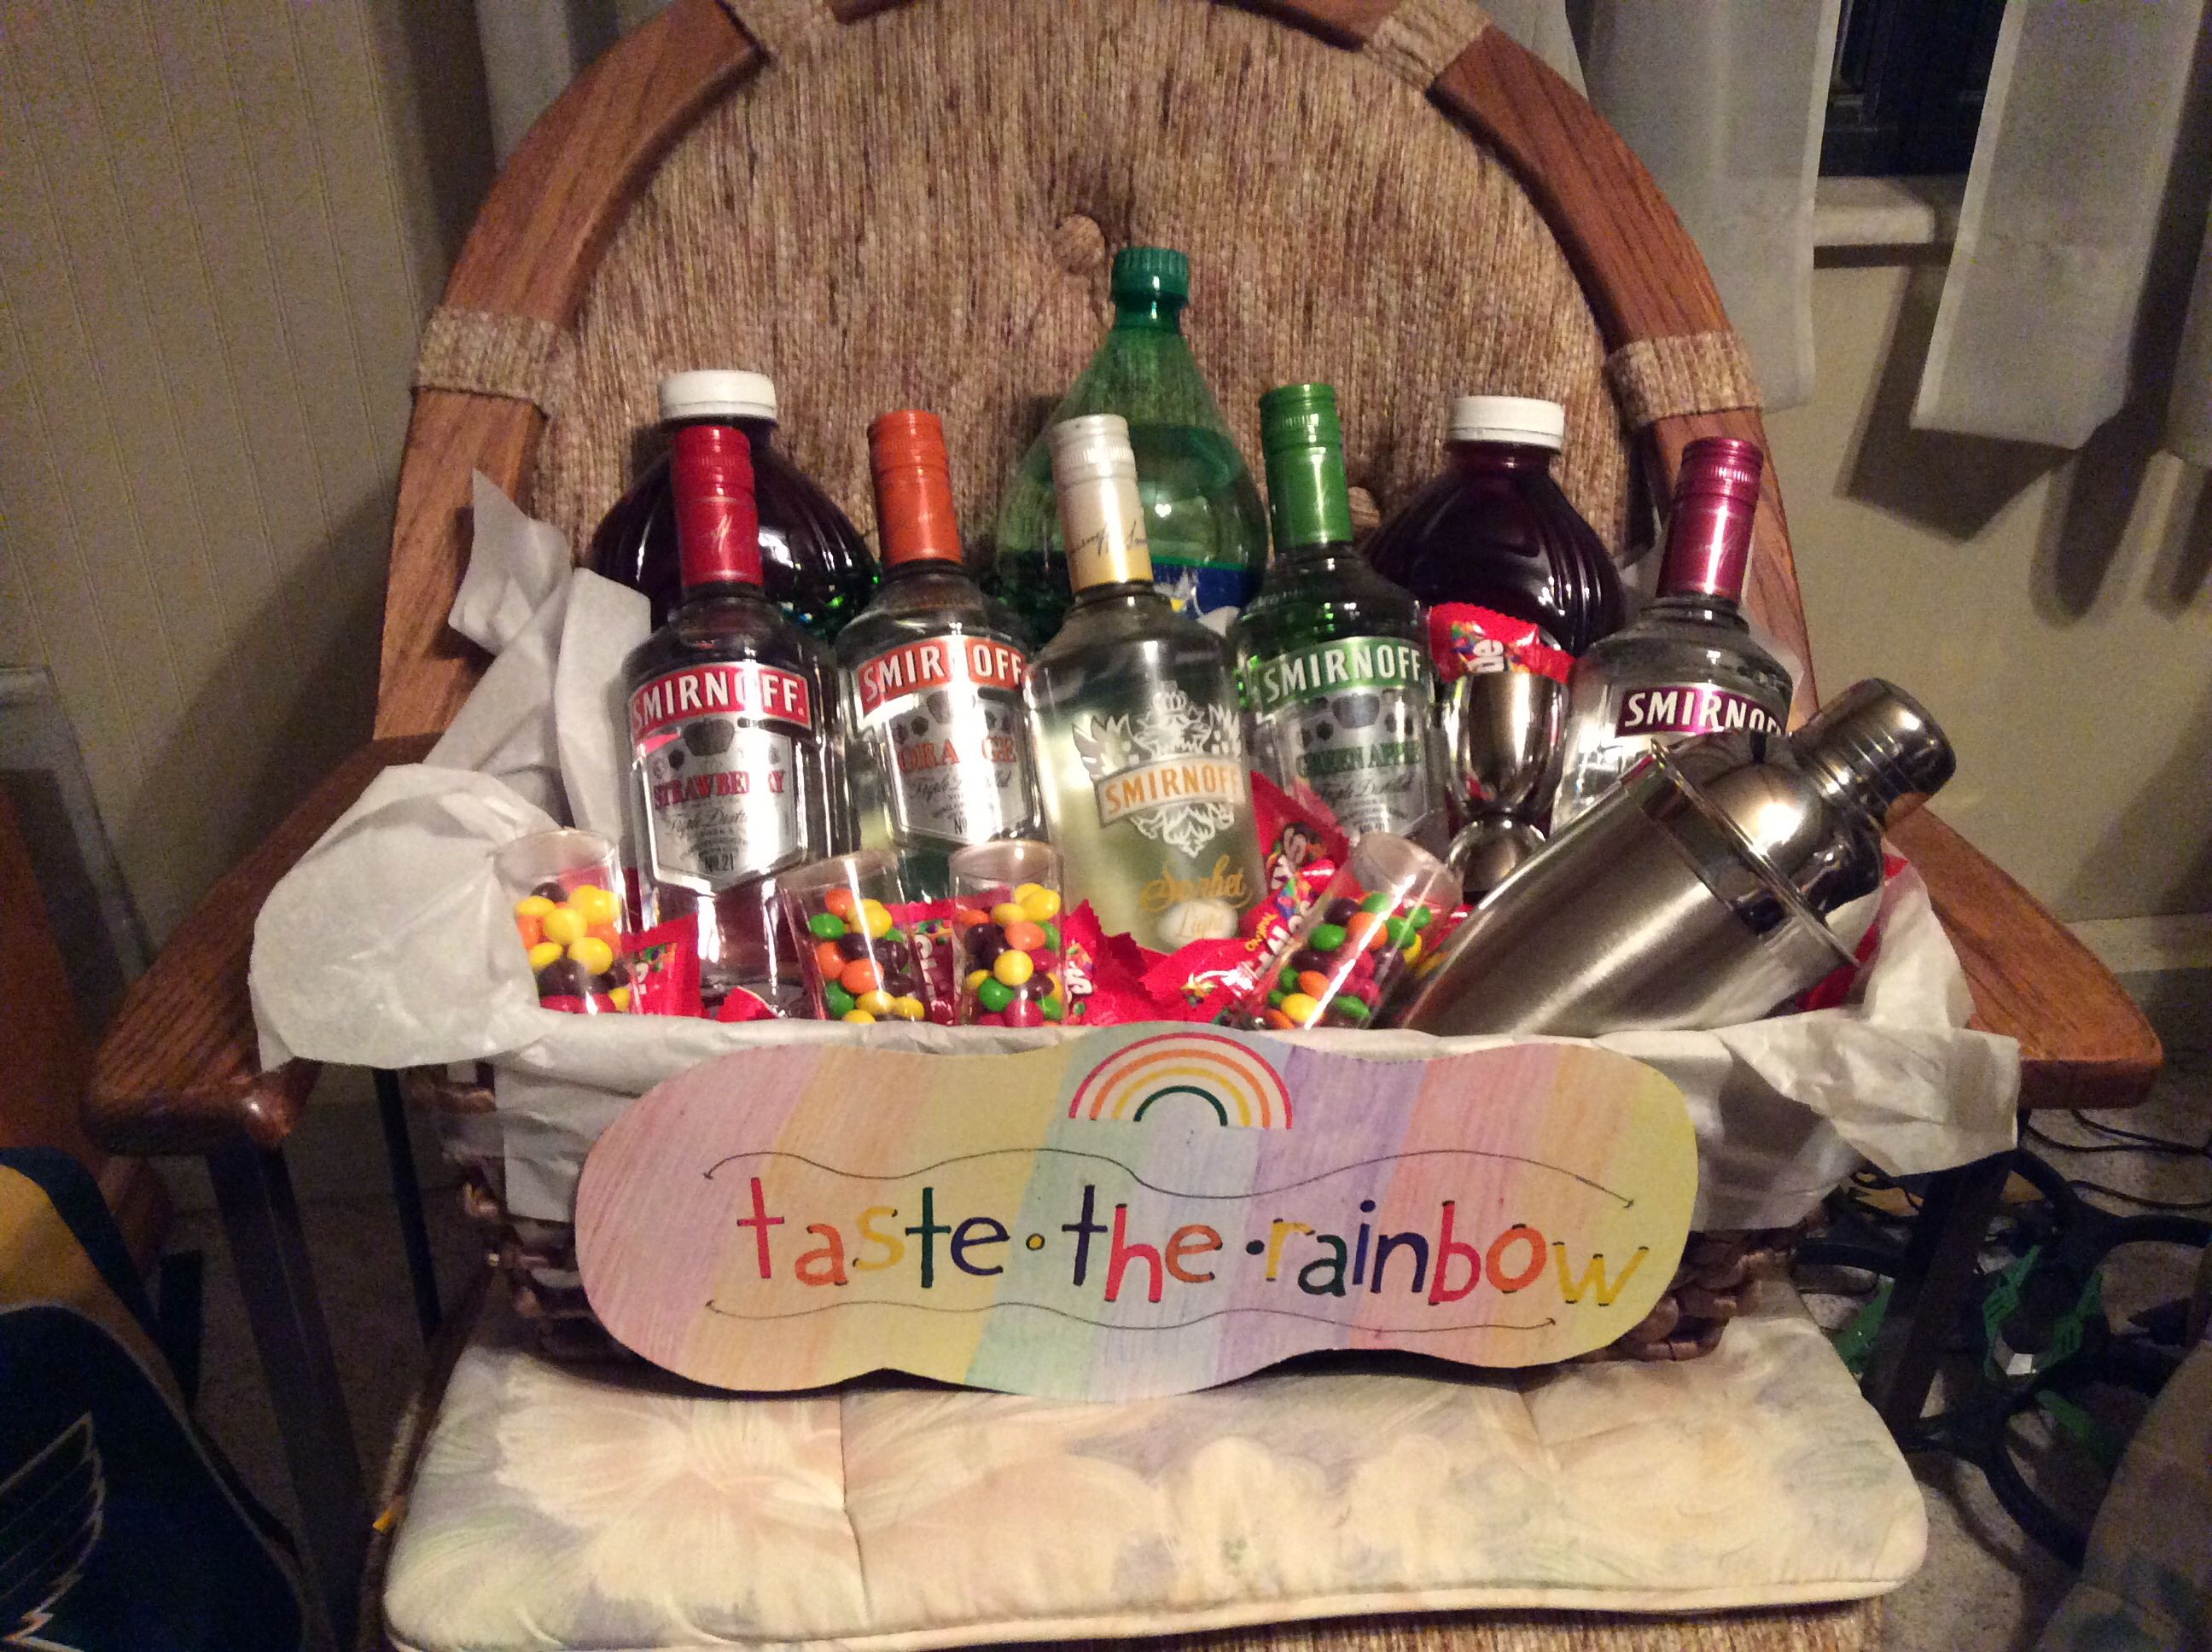 My Very Own Taste The Rainbow Basket